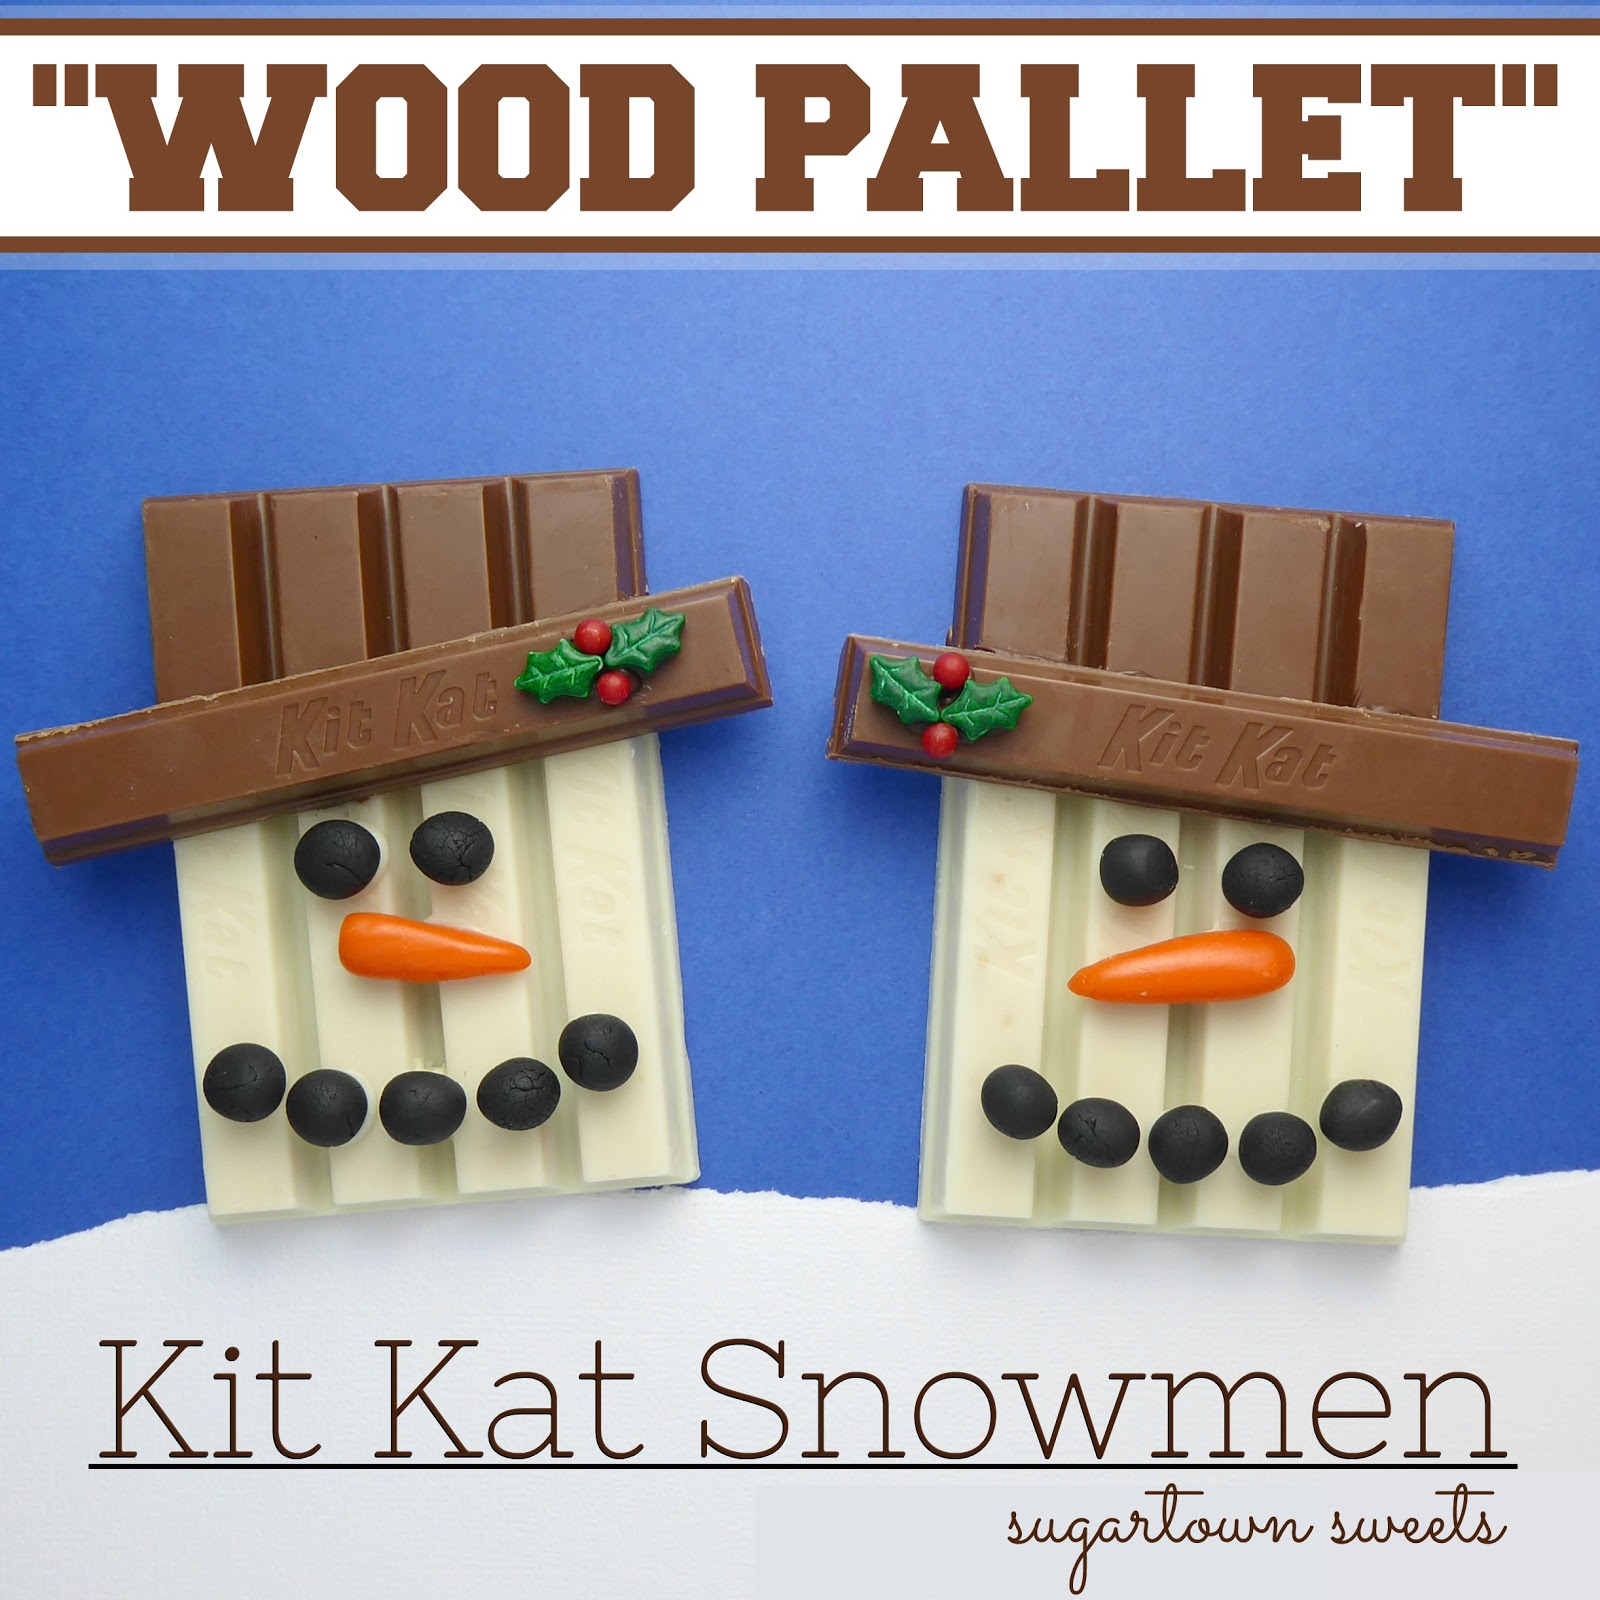 wood pallet kit kat snowmen craft